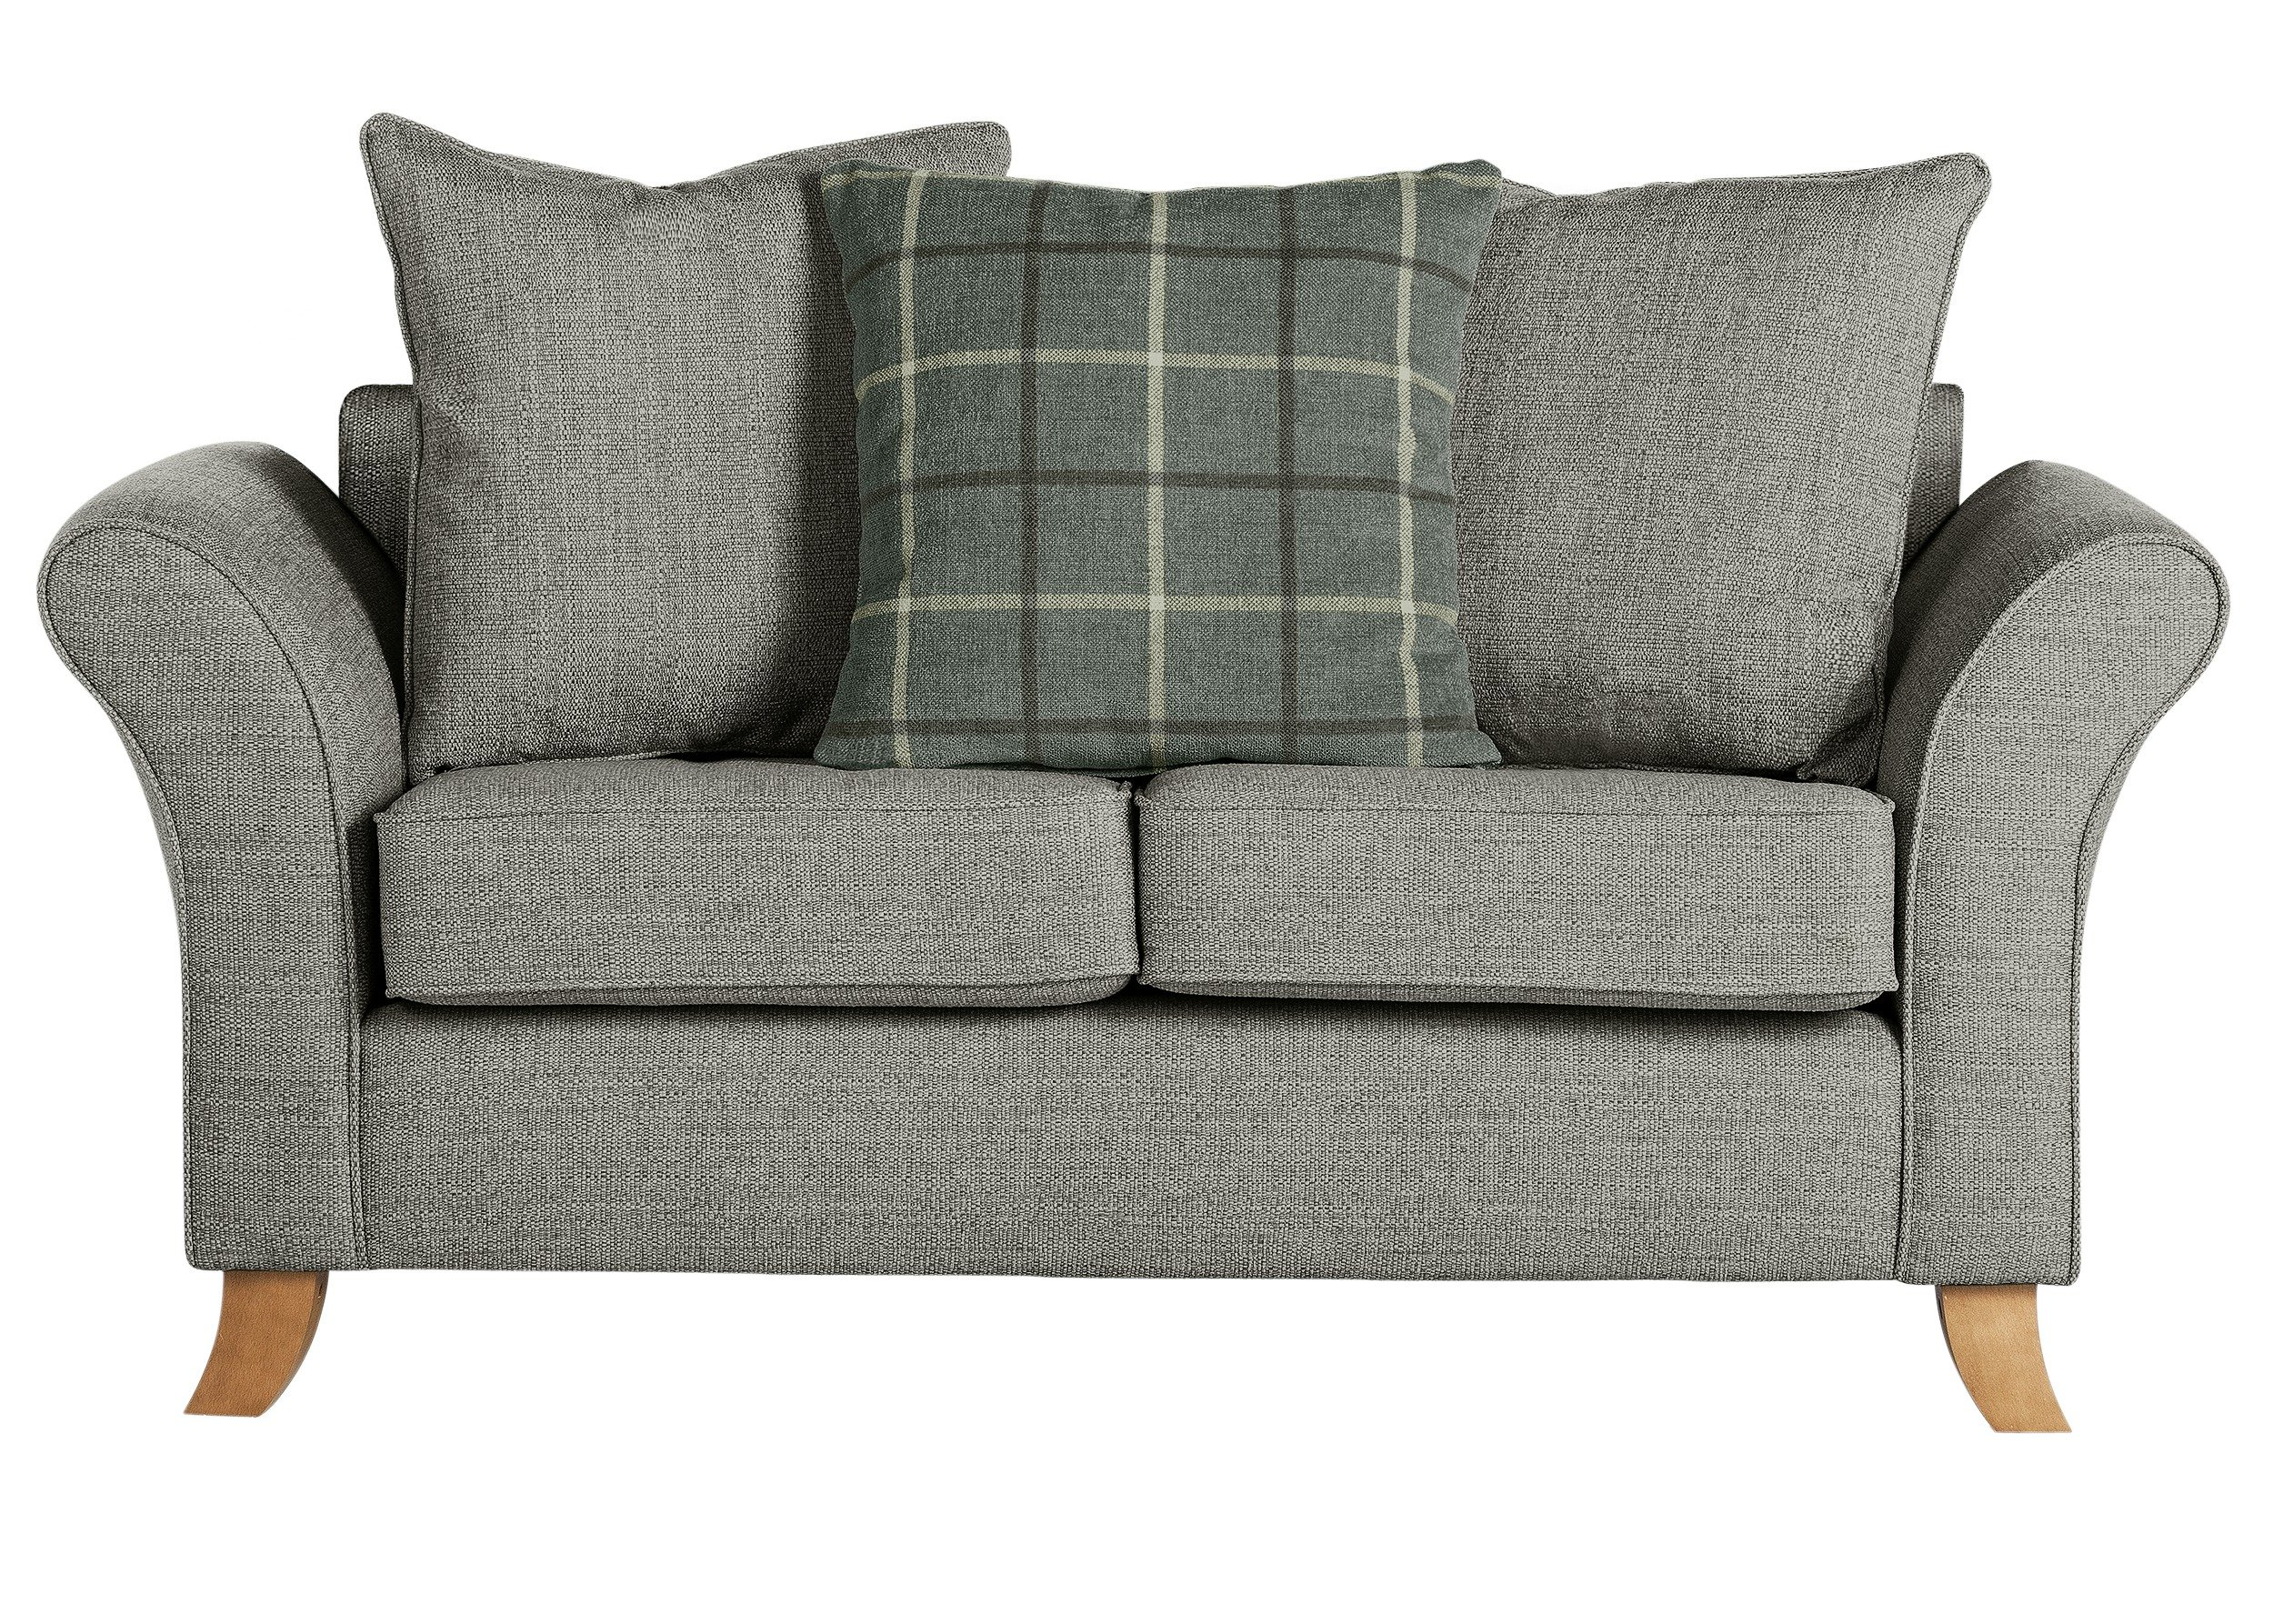 fabric chesterfield sofa argos images of living room with red sale on collection kayla 2 seater grey